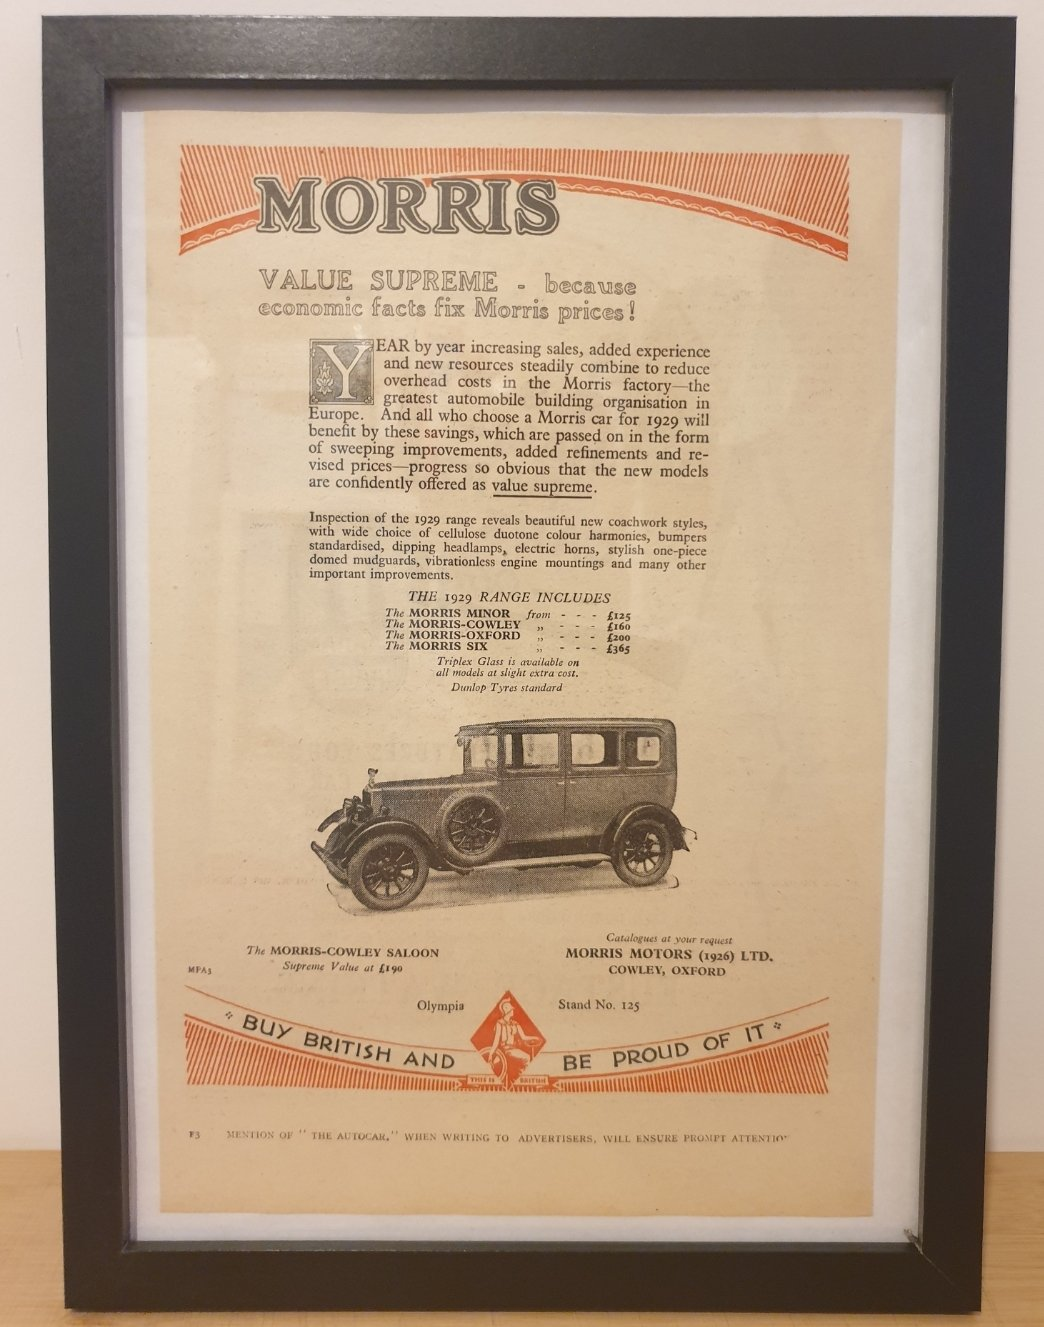 1967 Original 1928 Morris-Cowley Framed Advert  For Sale (picture 1 of 3)